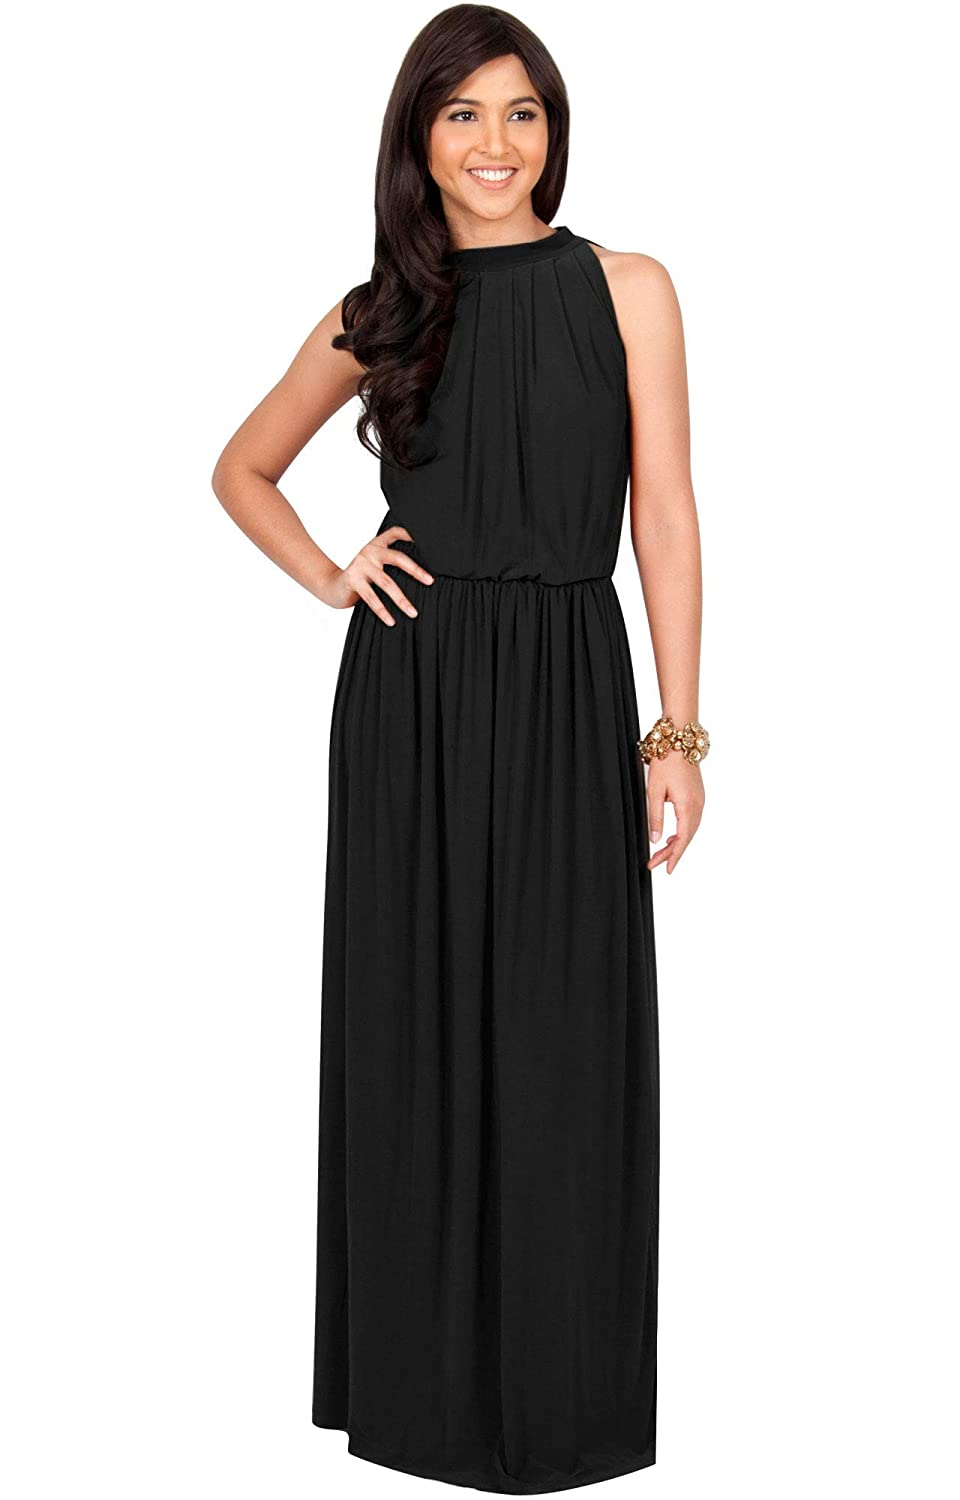 eaa6157dcf KOH KOH Sexy Sleeveless Summer Formal Flowy Casual Gown at Amazon Women s  Clothing store